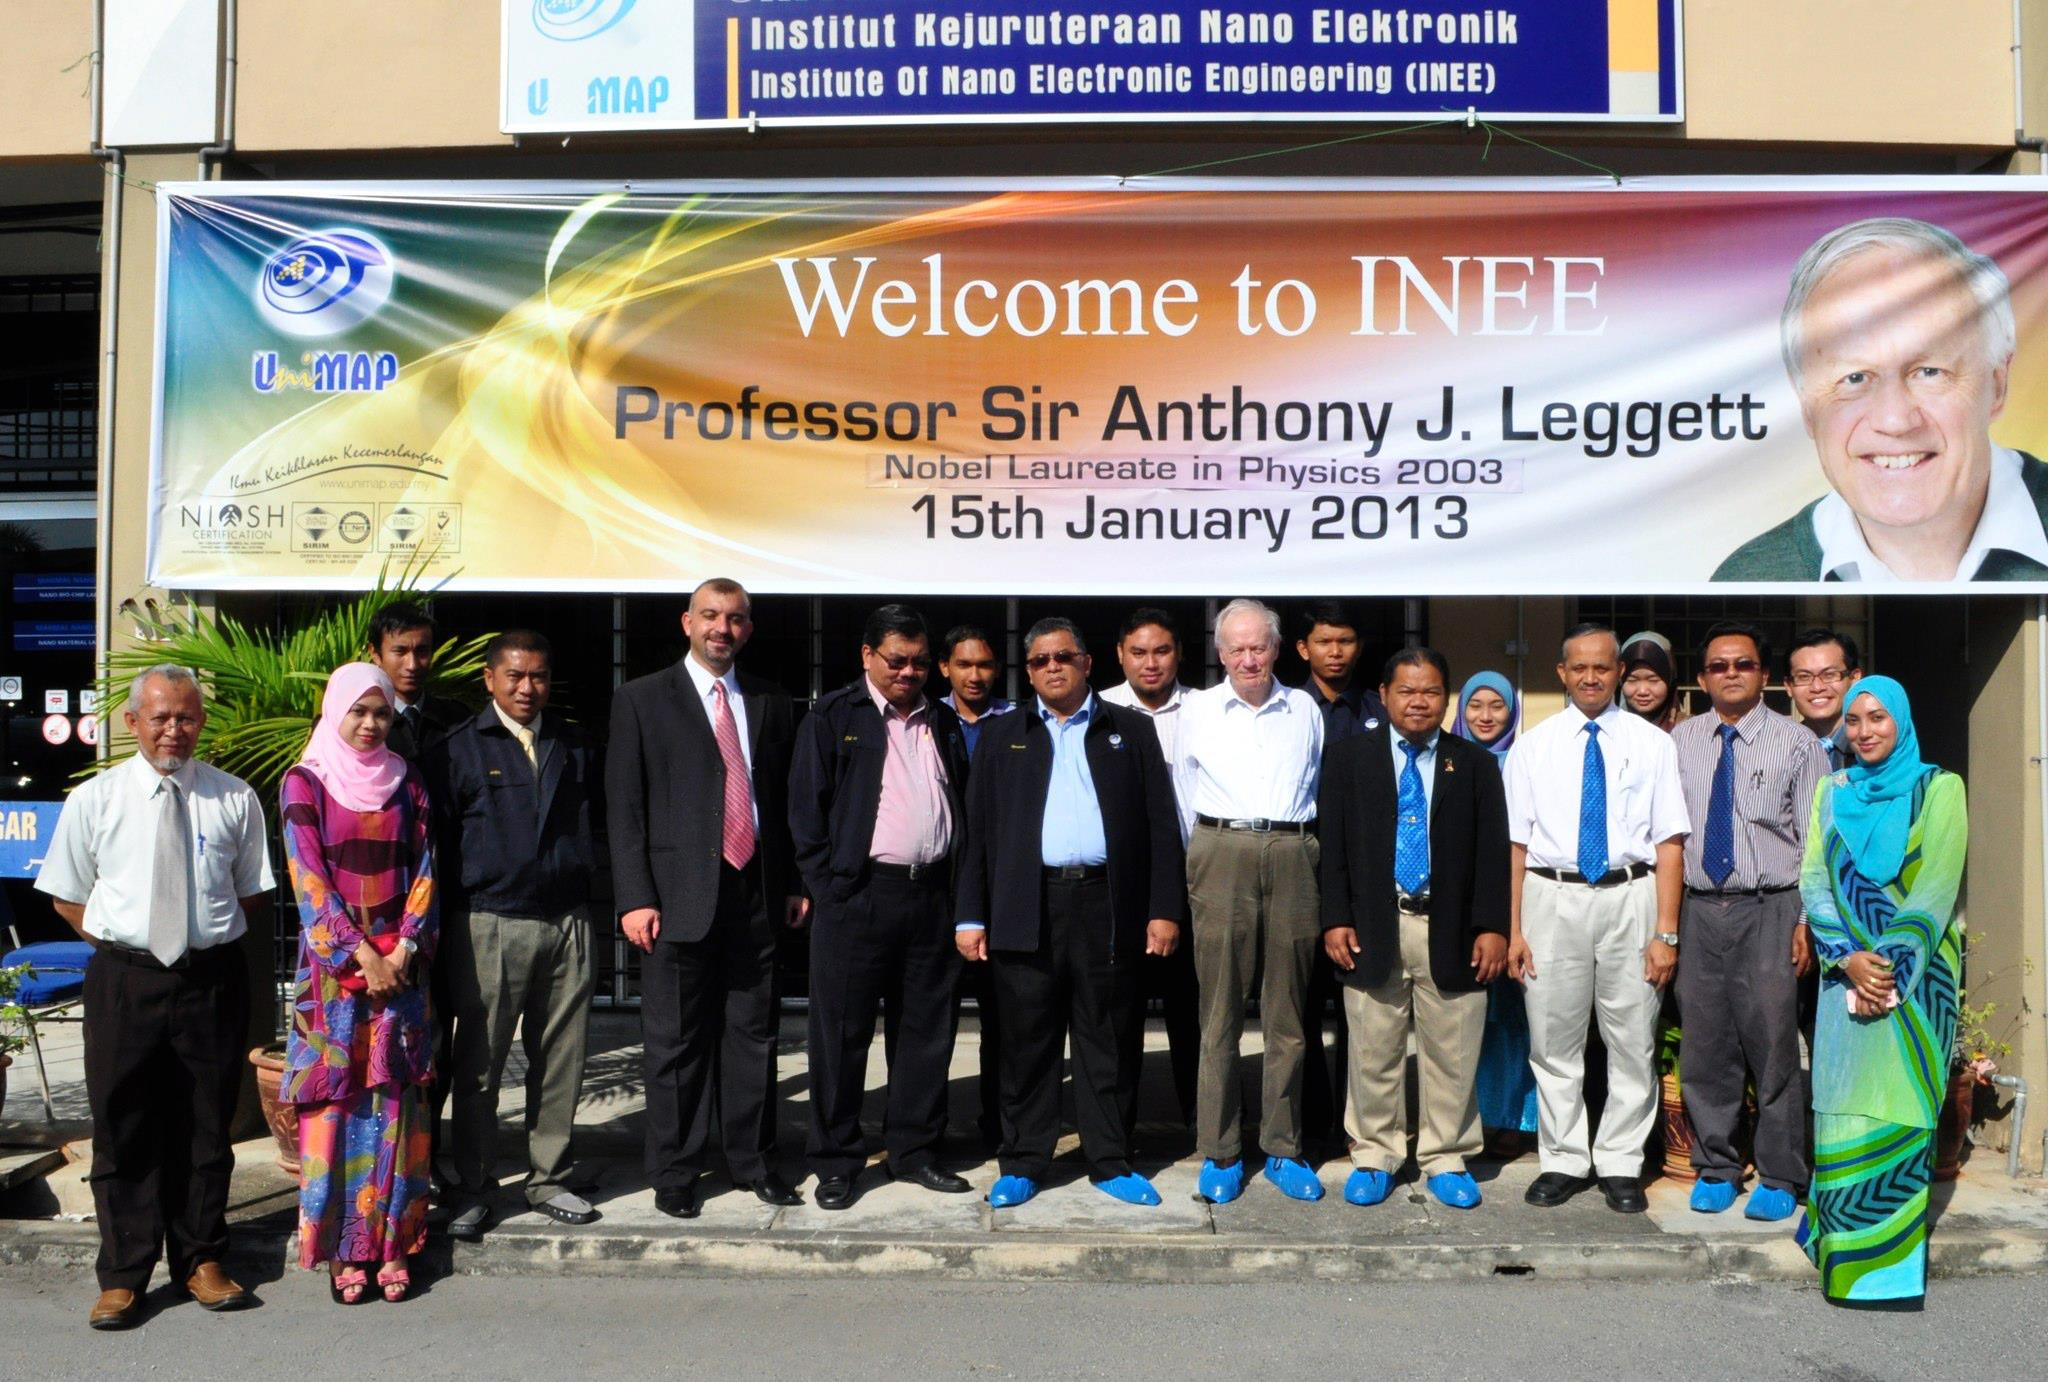 Visit From Prof. Sir Anthony J. Leggett